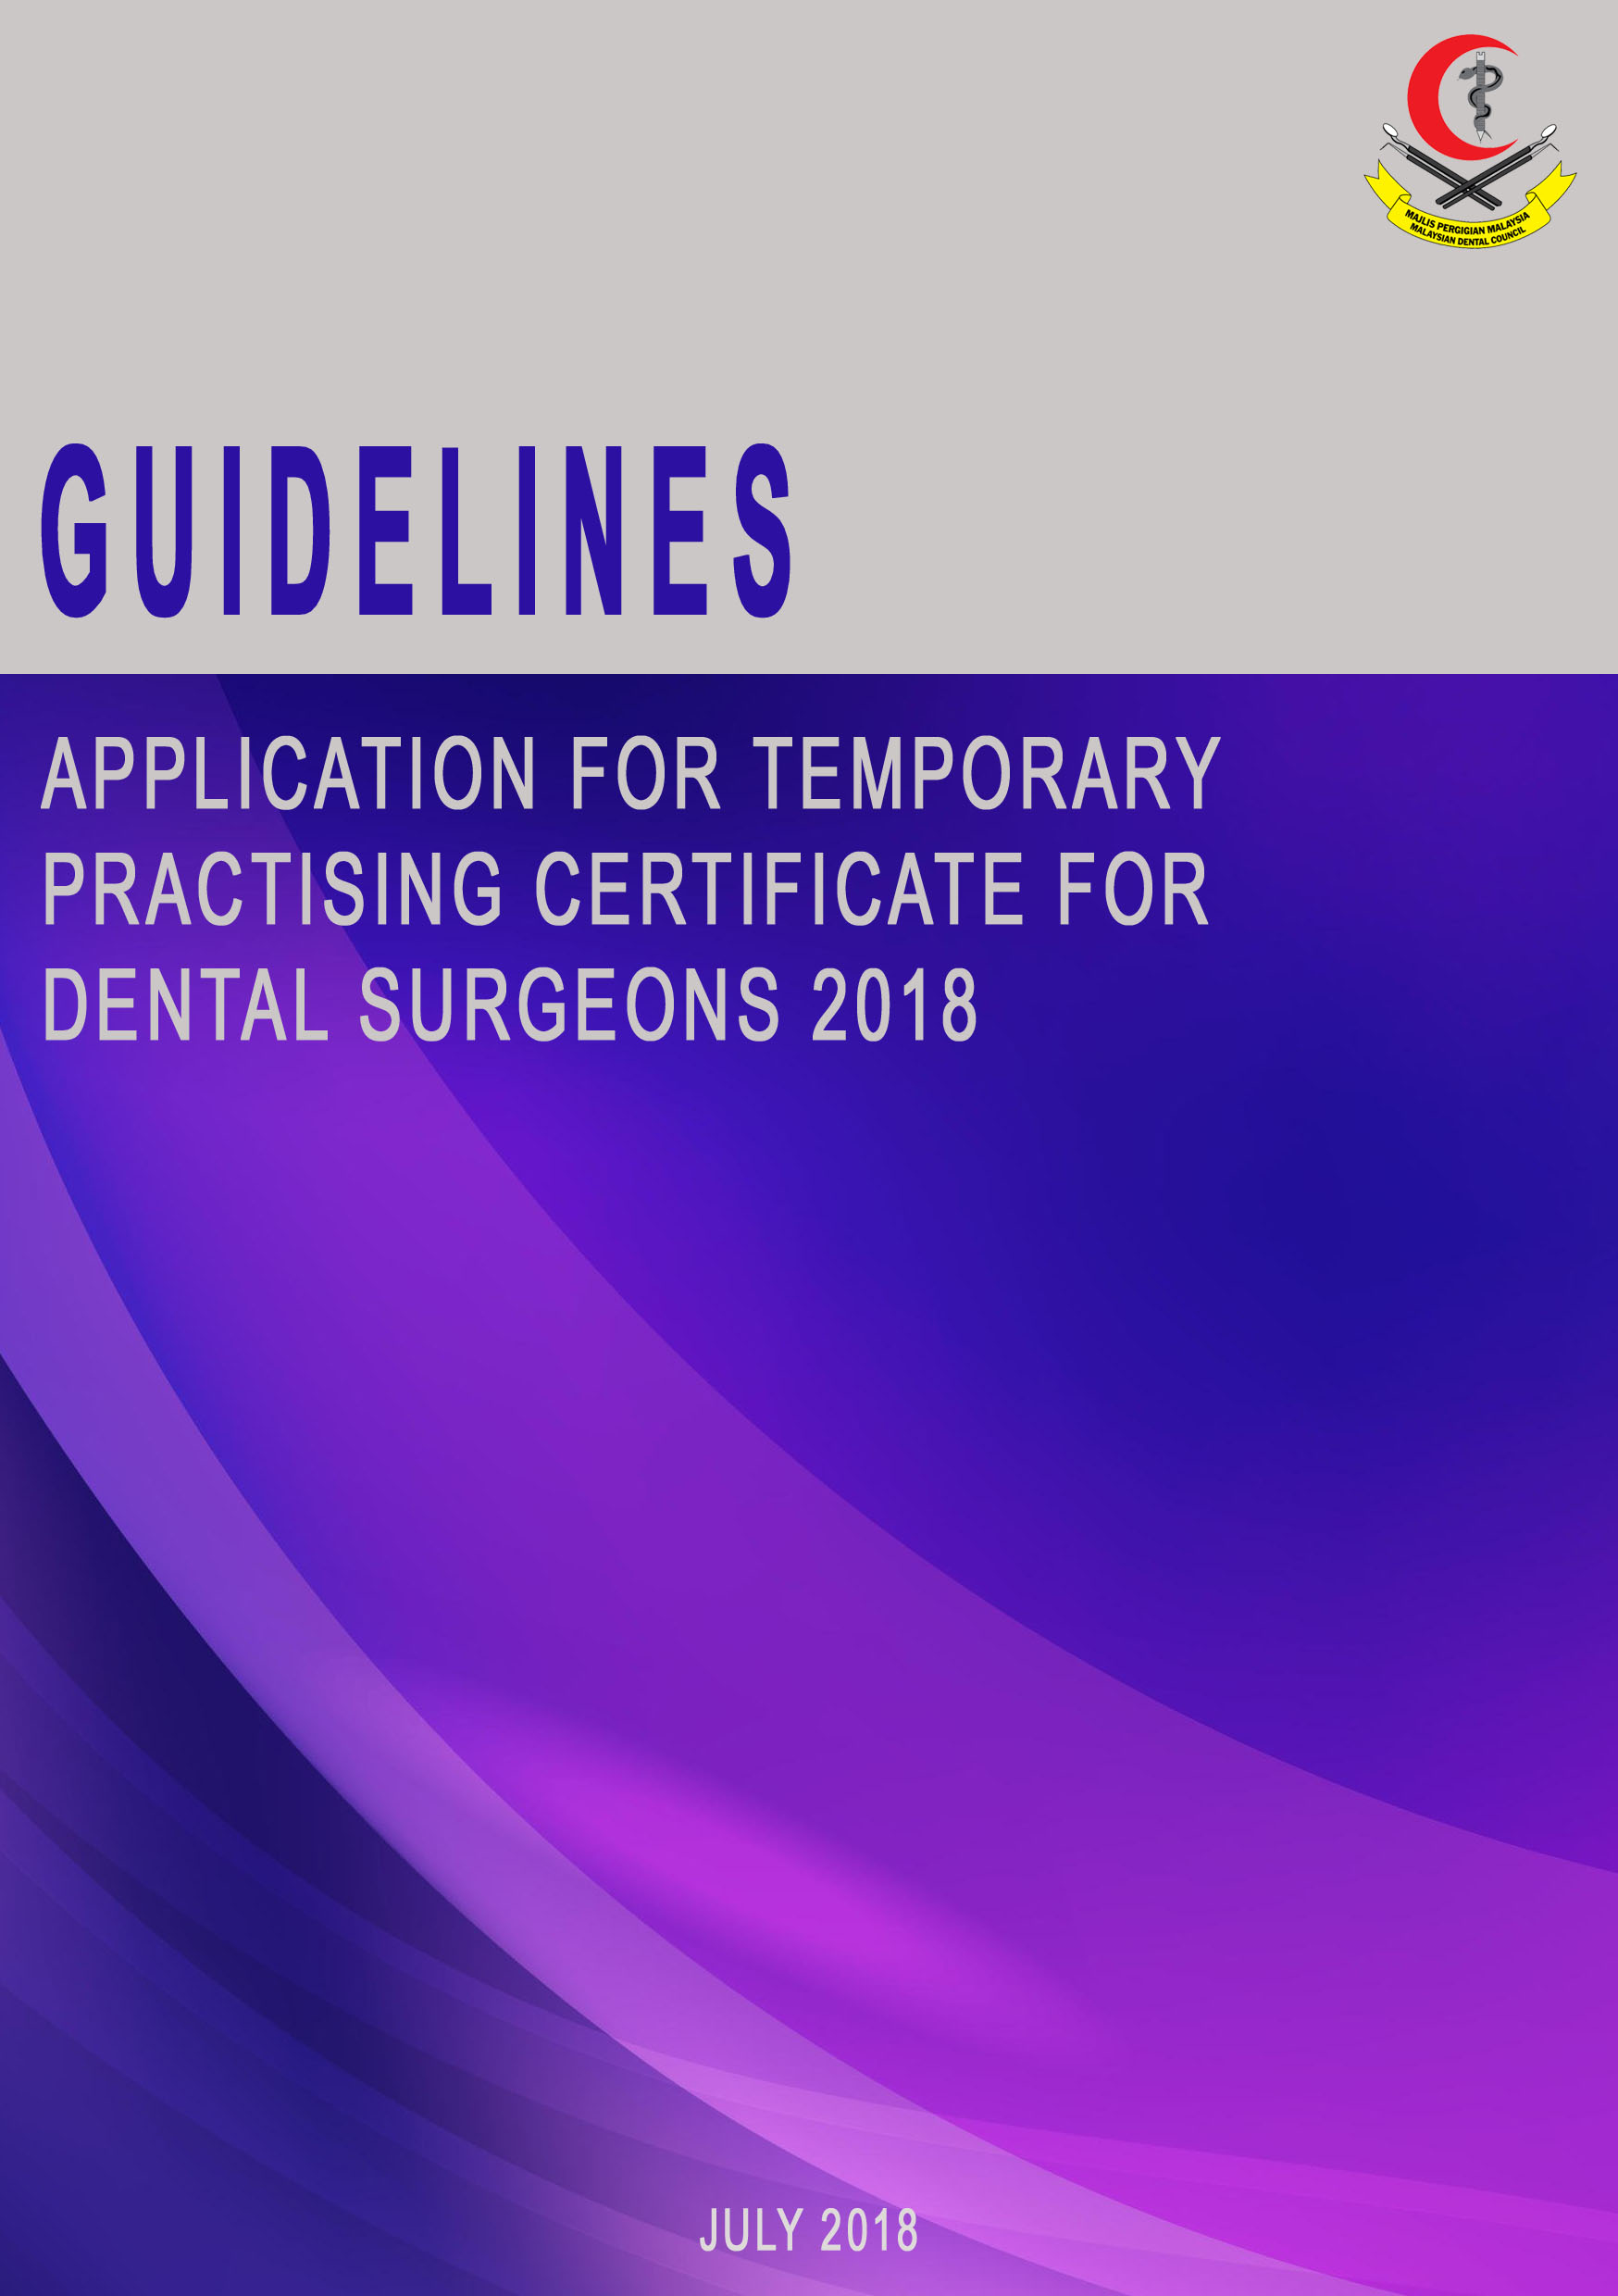 Guidelines for Application for Temporary Practising Certificates For Dental Surgeons 2014